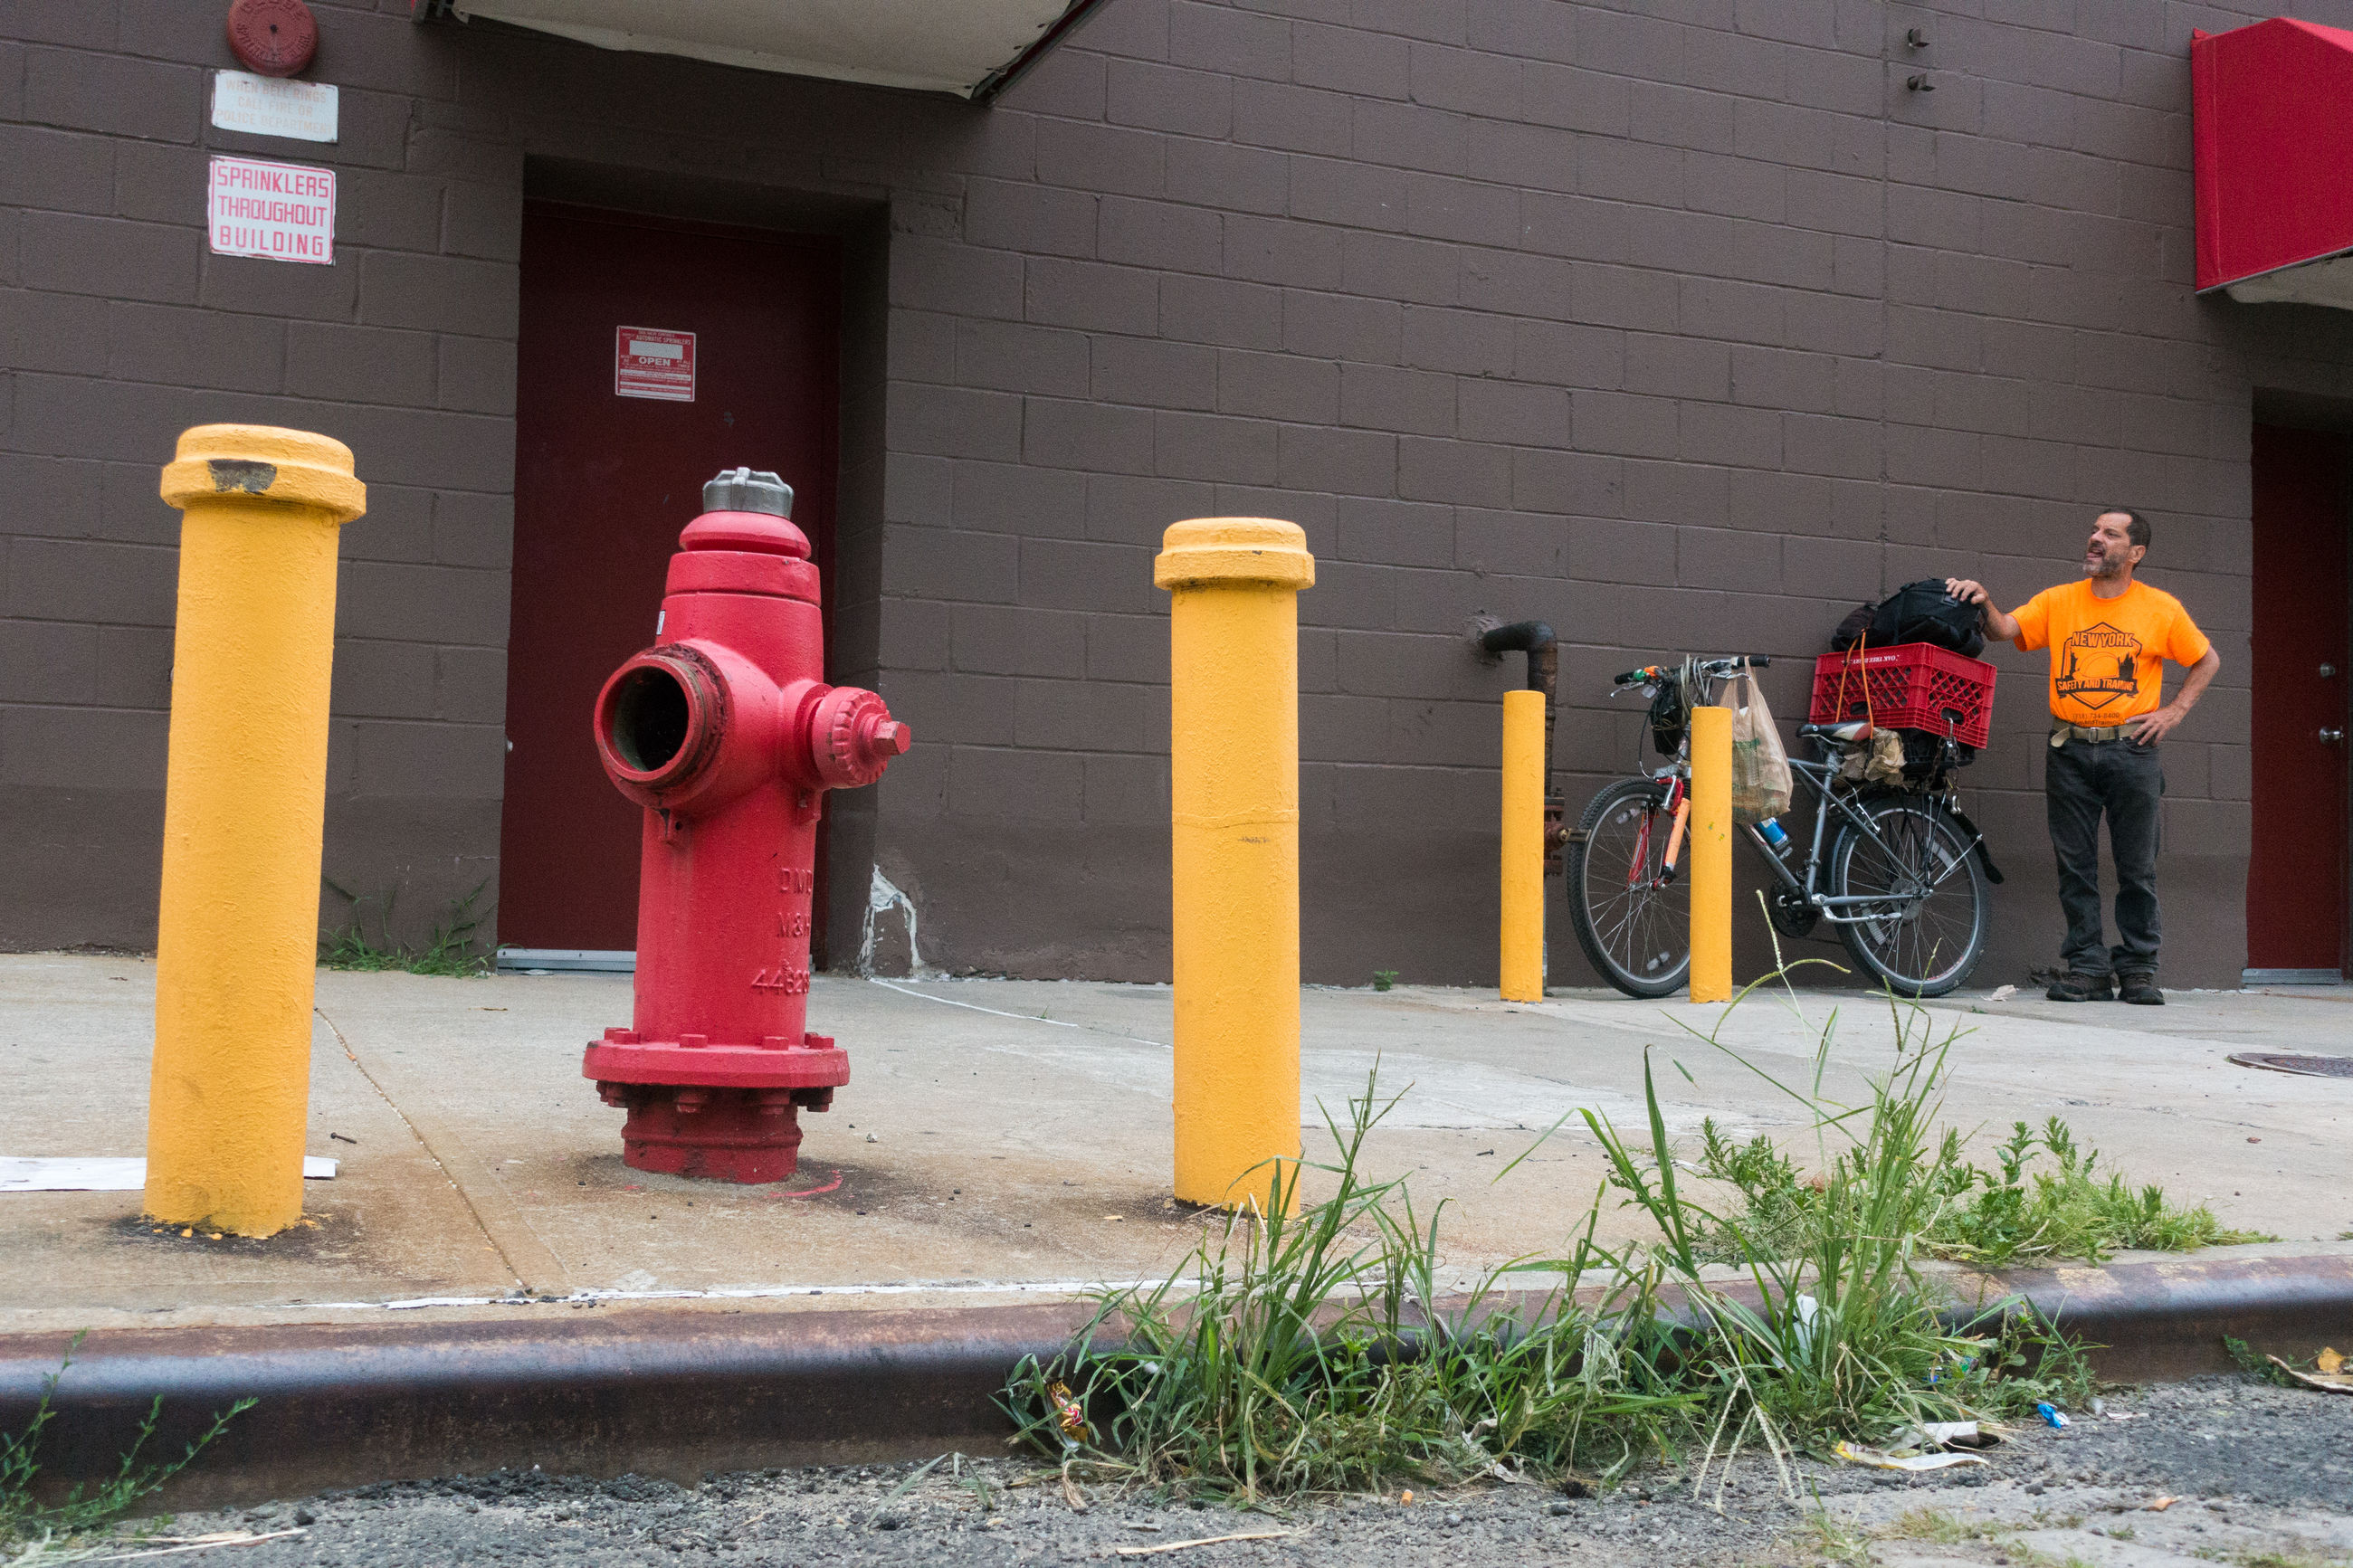 outdoors, day, built structure, fire hydrant, building exterior, architecture, firefighter, yellow